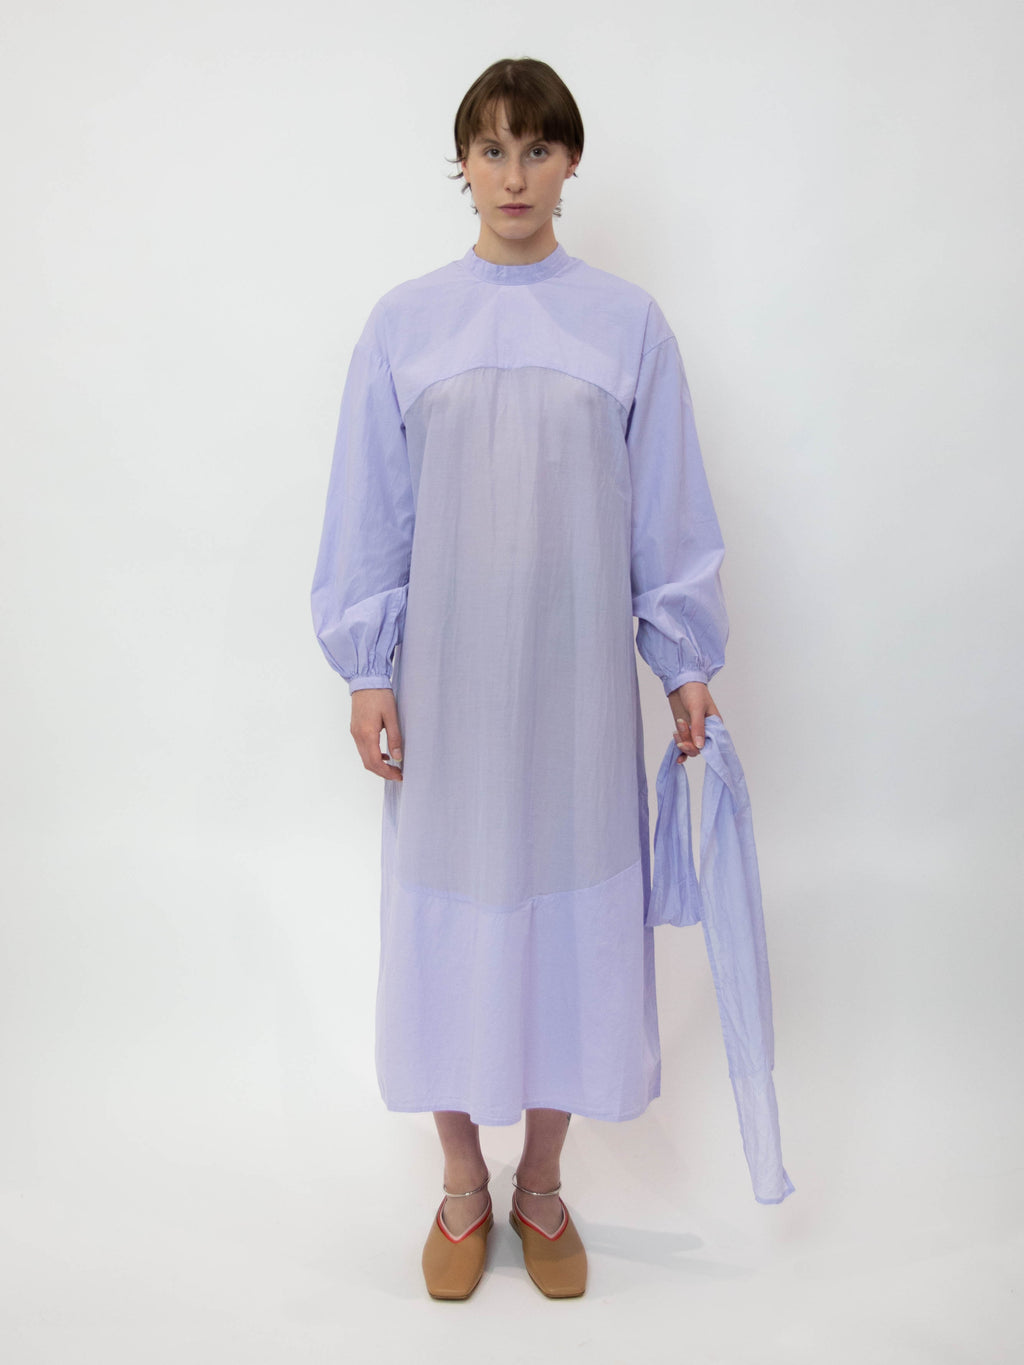 Mythic Ceremony Silk Cotton Circle Indication Dress - Violet Flame